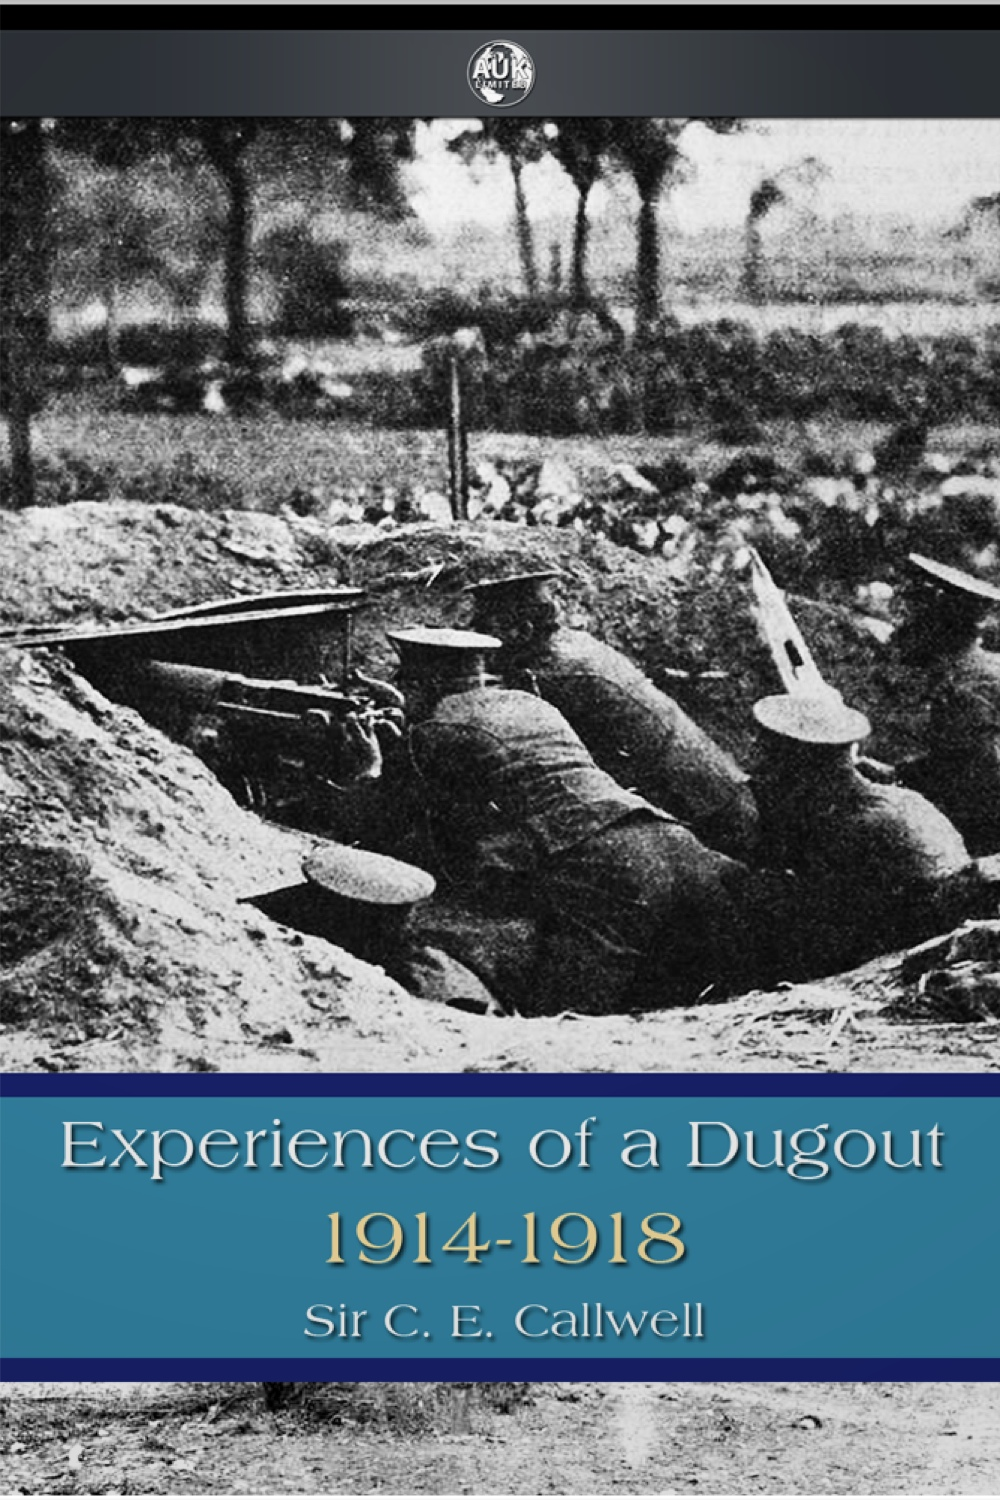 Experiences of a Dugout By: C. E. Callwell